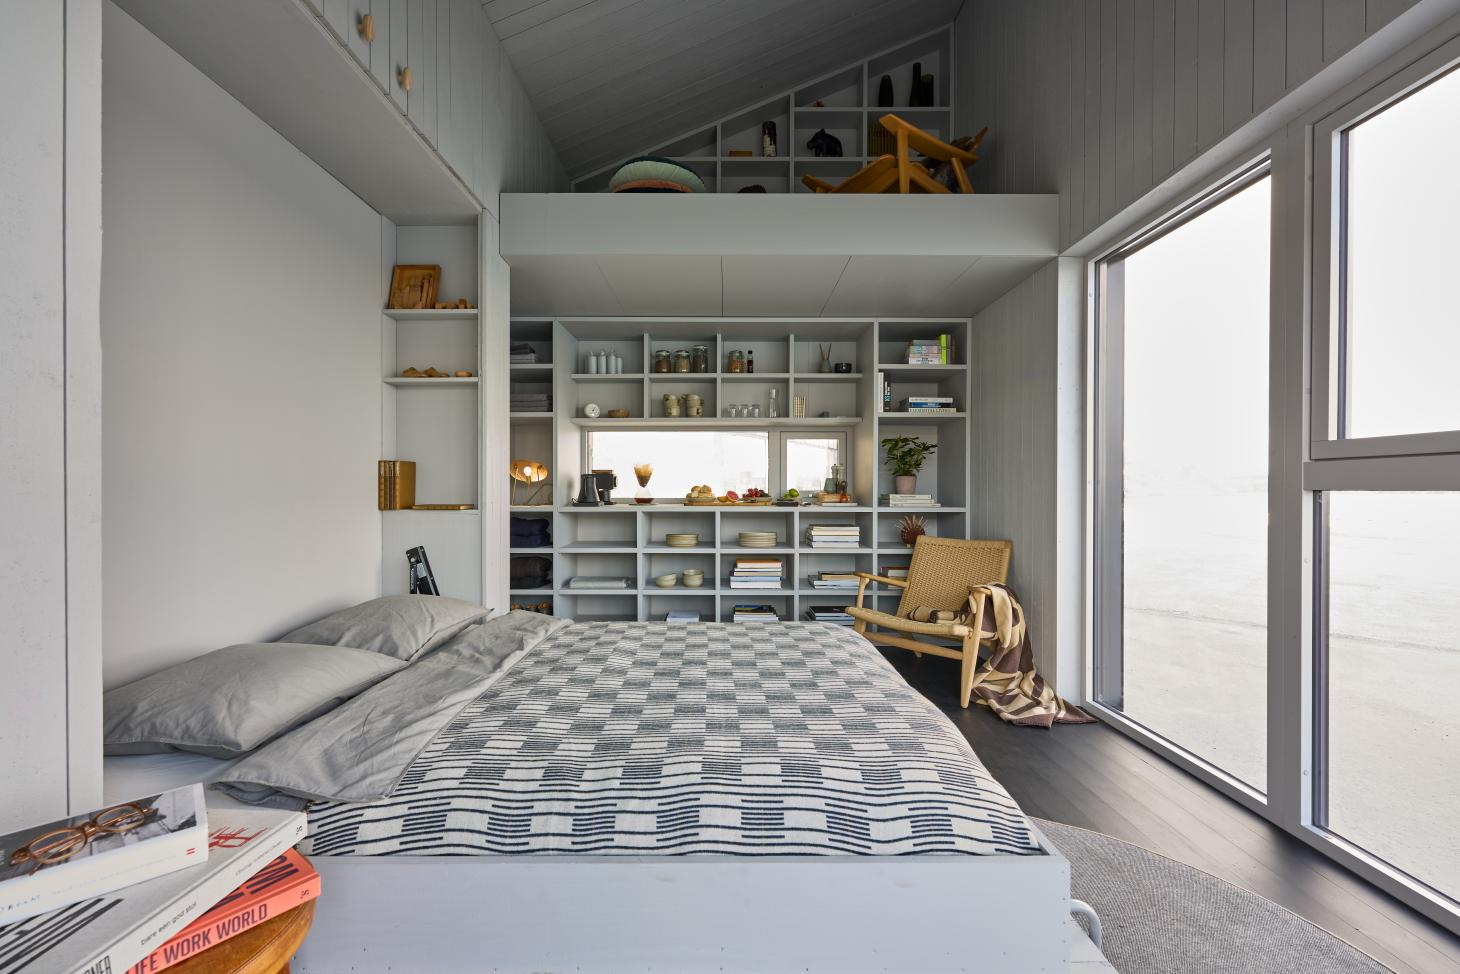 The high ceilings of the XS Minihus allow for a separate reading platform, reached by a ladder